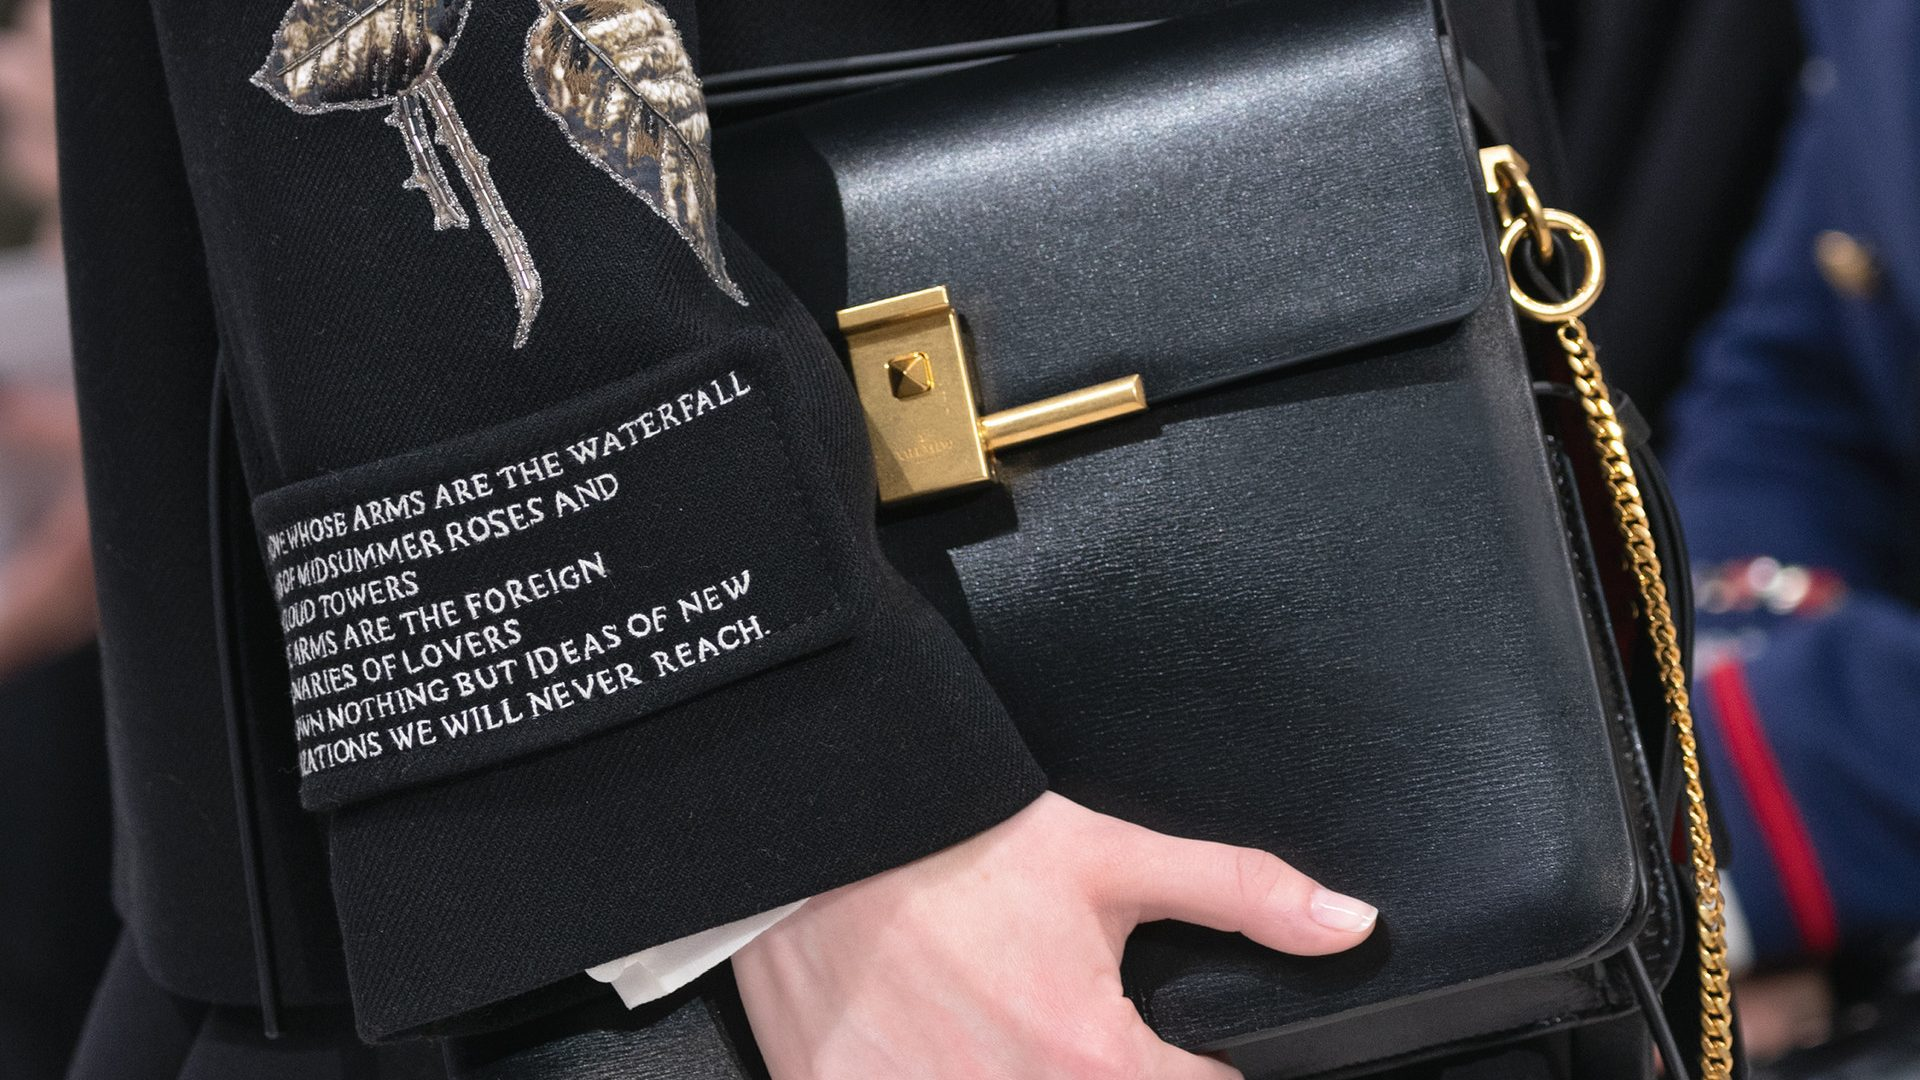 Understated, Classy, And Elegant, Autumn/Winter 2019's Standout Bags Are In A League Of Their Own